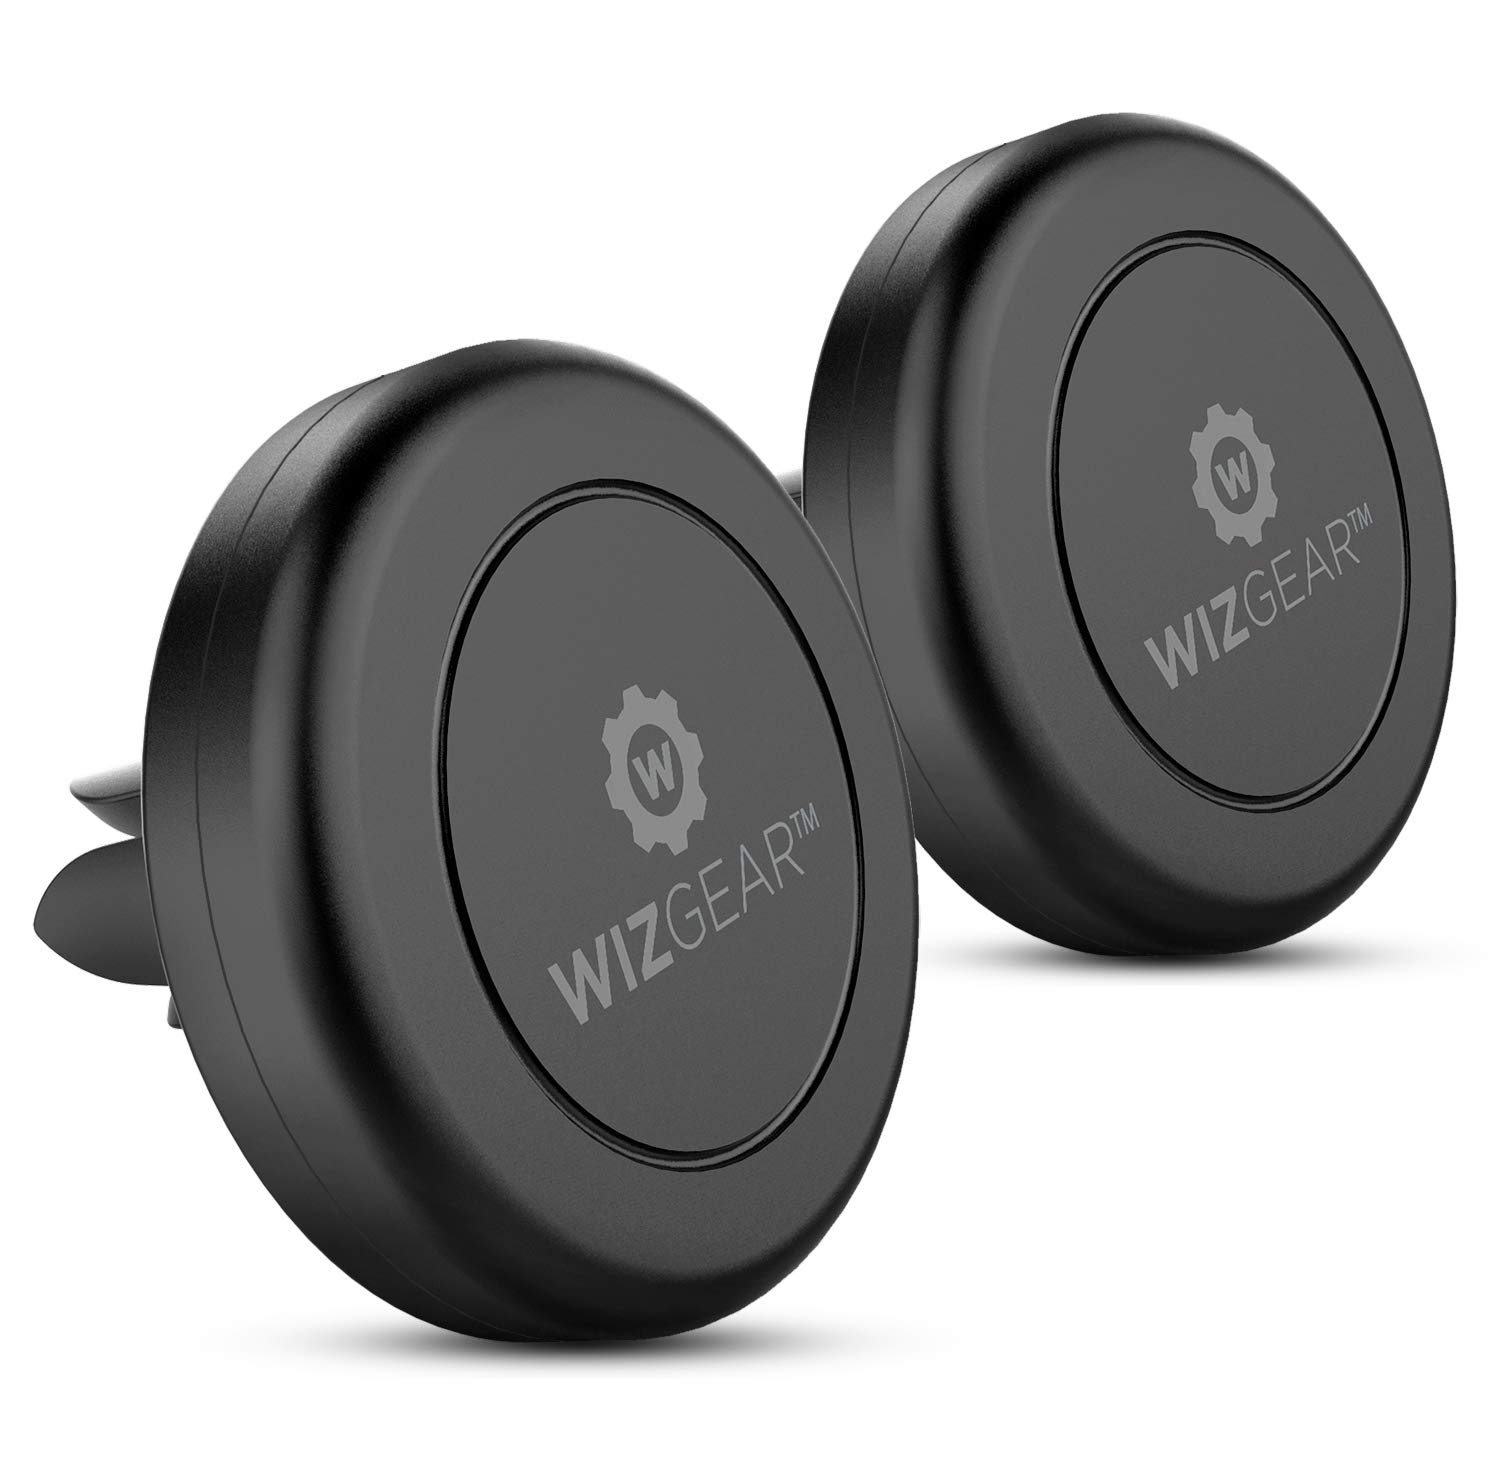 Magnetic Mount, WizGear [2 PACK] Universal Air Vent Magnetic Car Mount Phone Holder, for Cell Phones and Mini Tablets with Fast Swift-Snap Technology, With 4 Metal Plates by WizGear